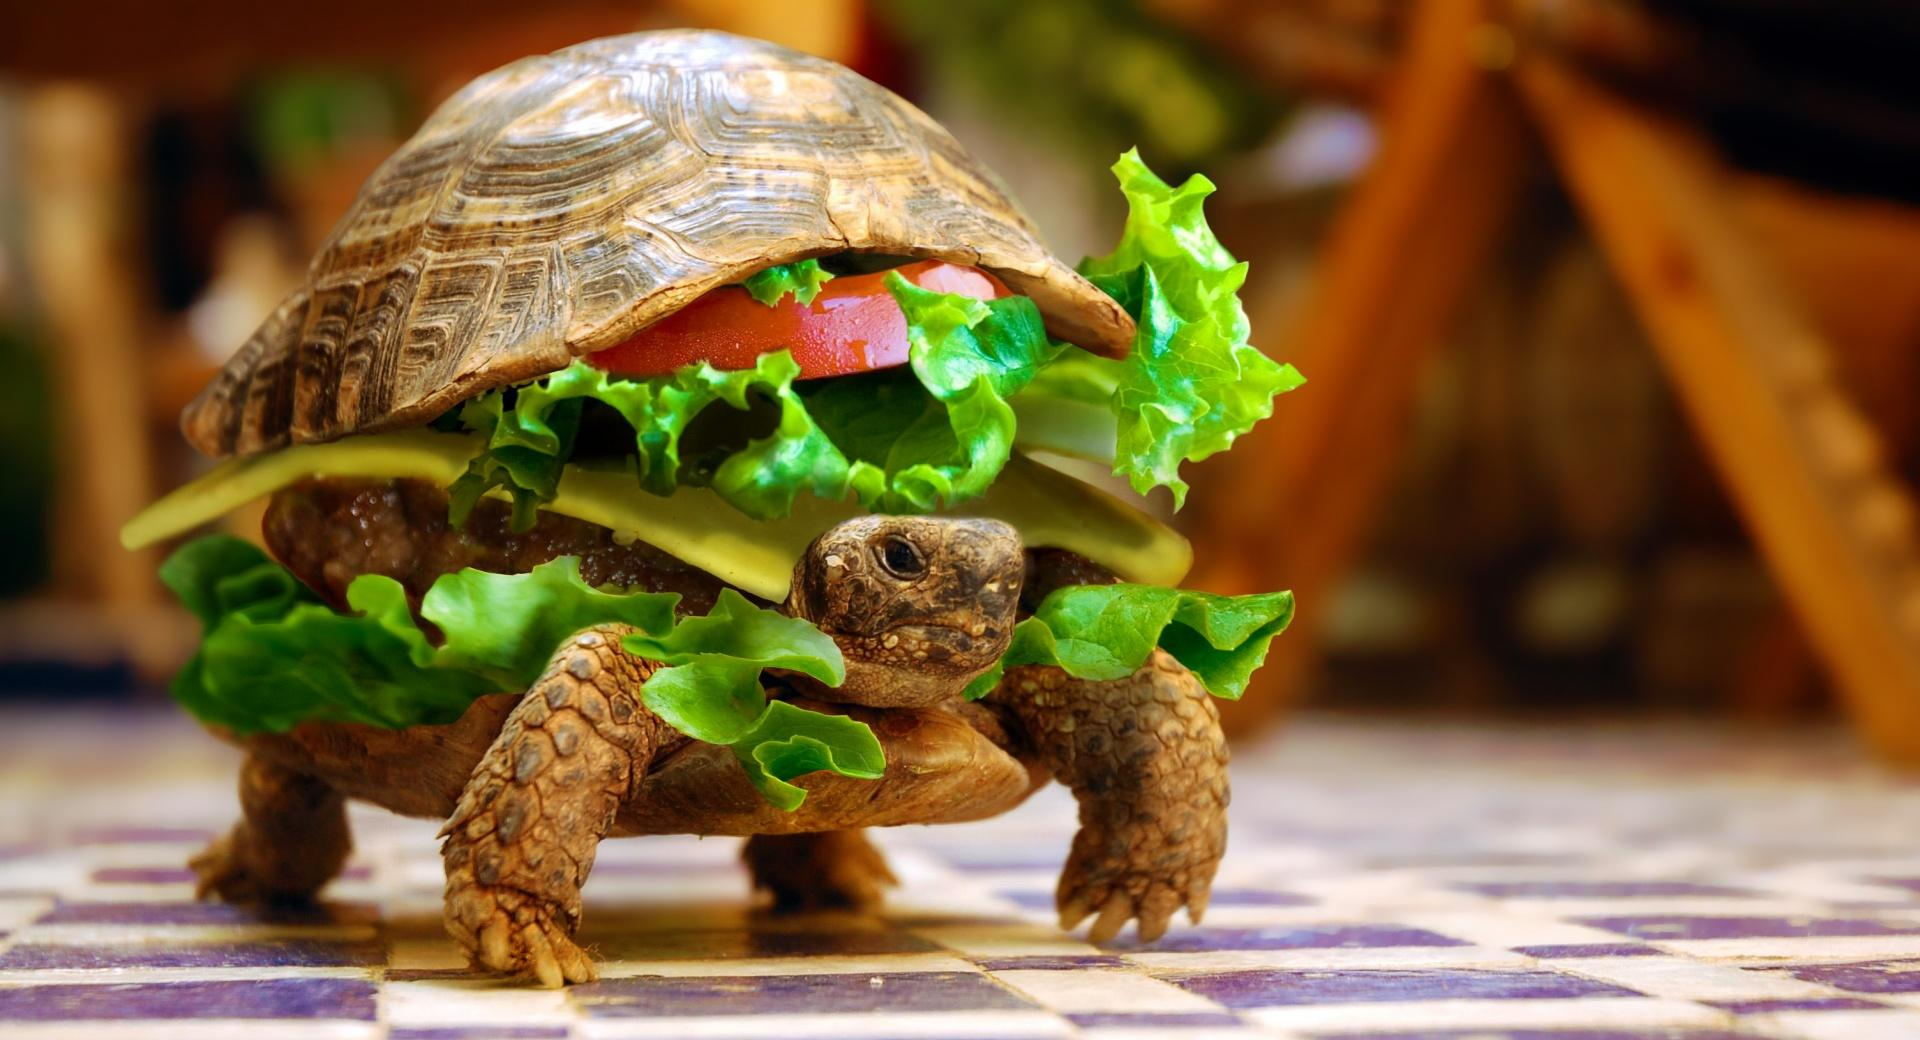 Cheese Turtle Burger By K23 wallpapers HD quality